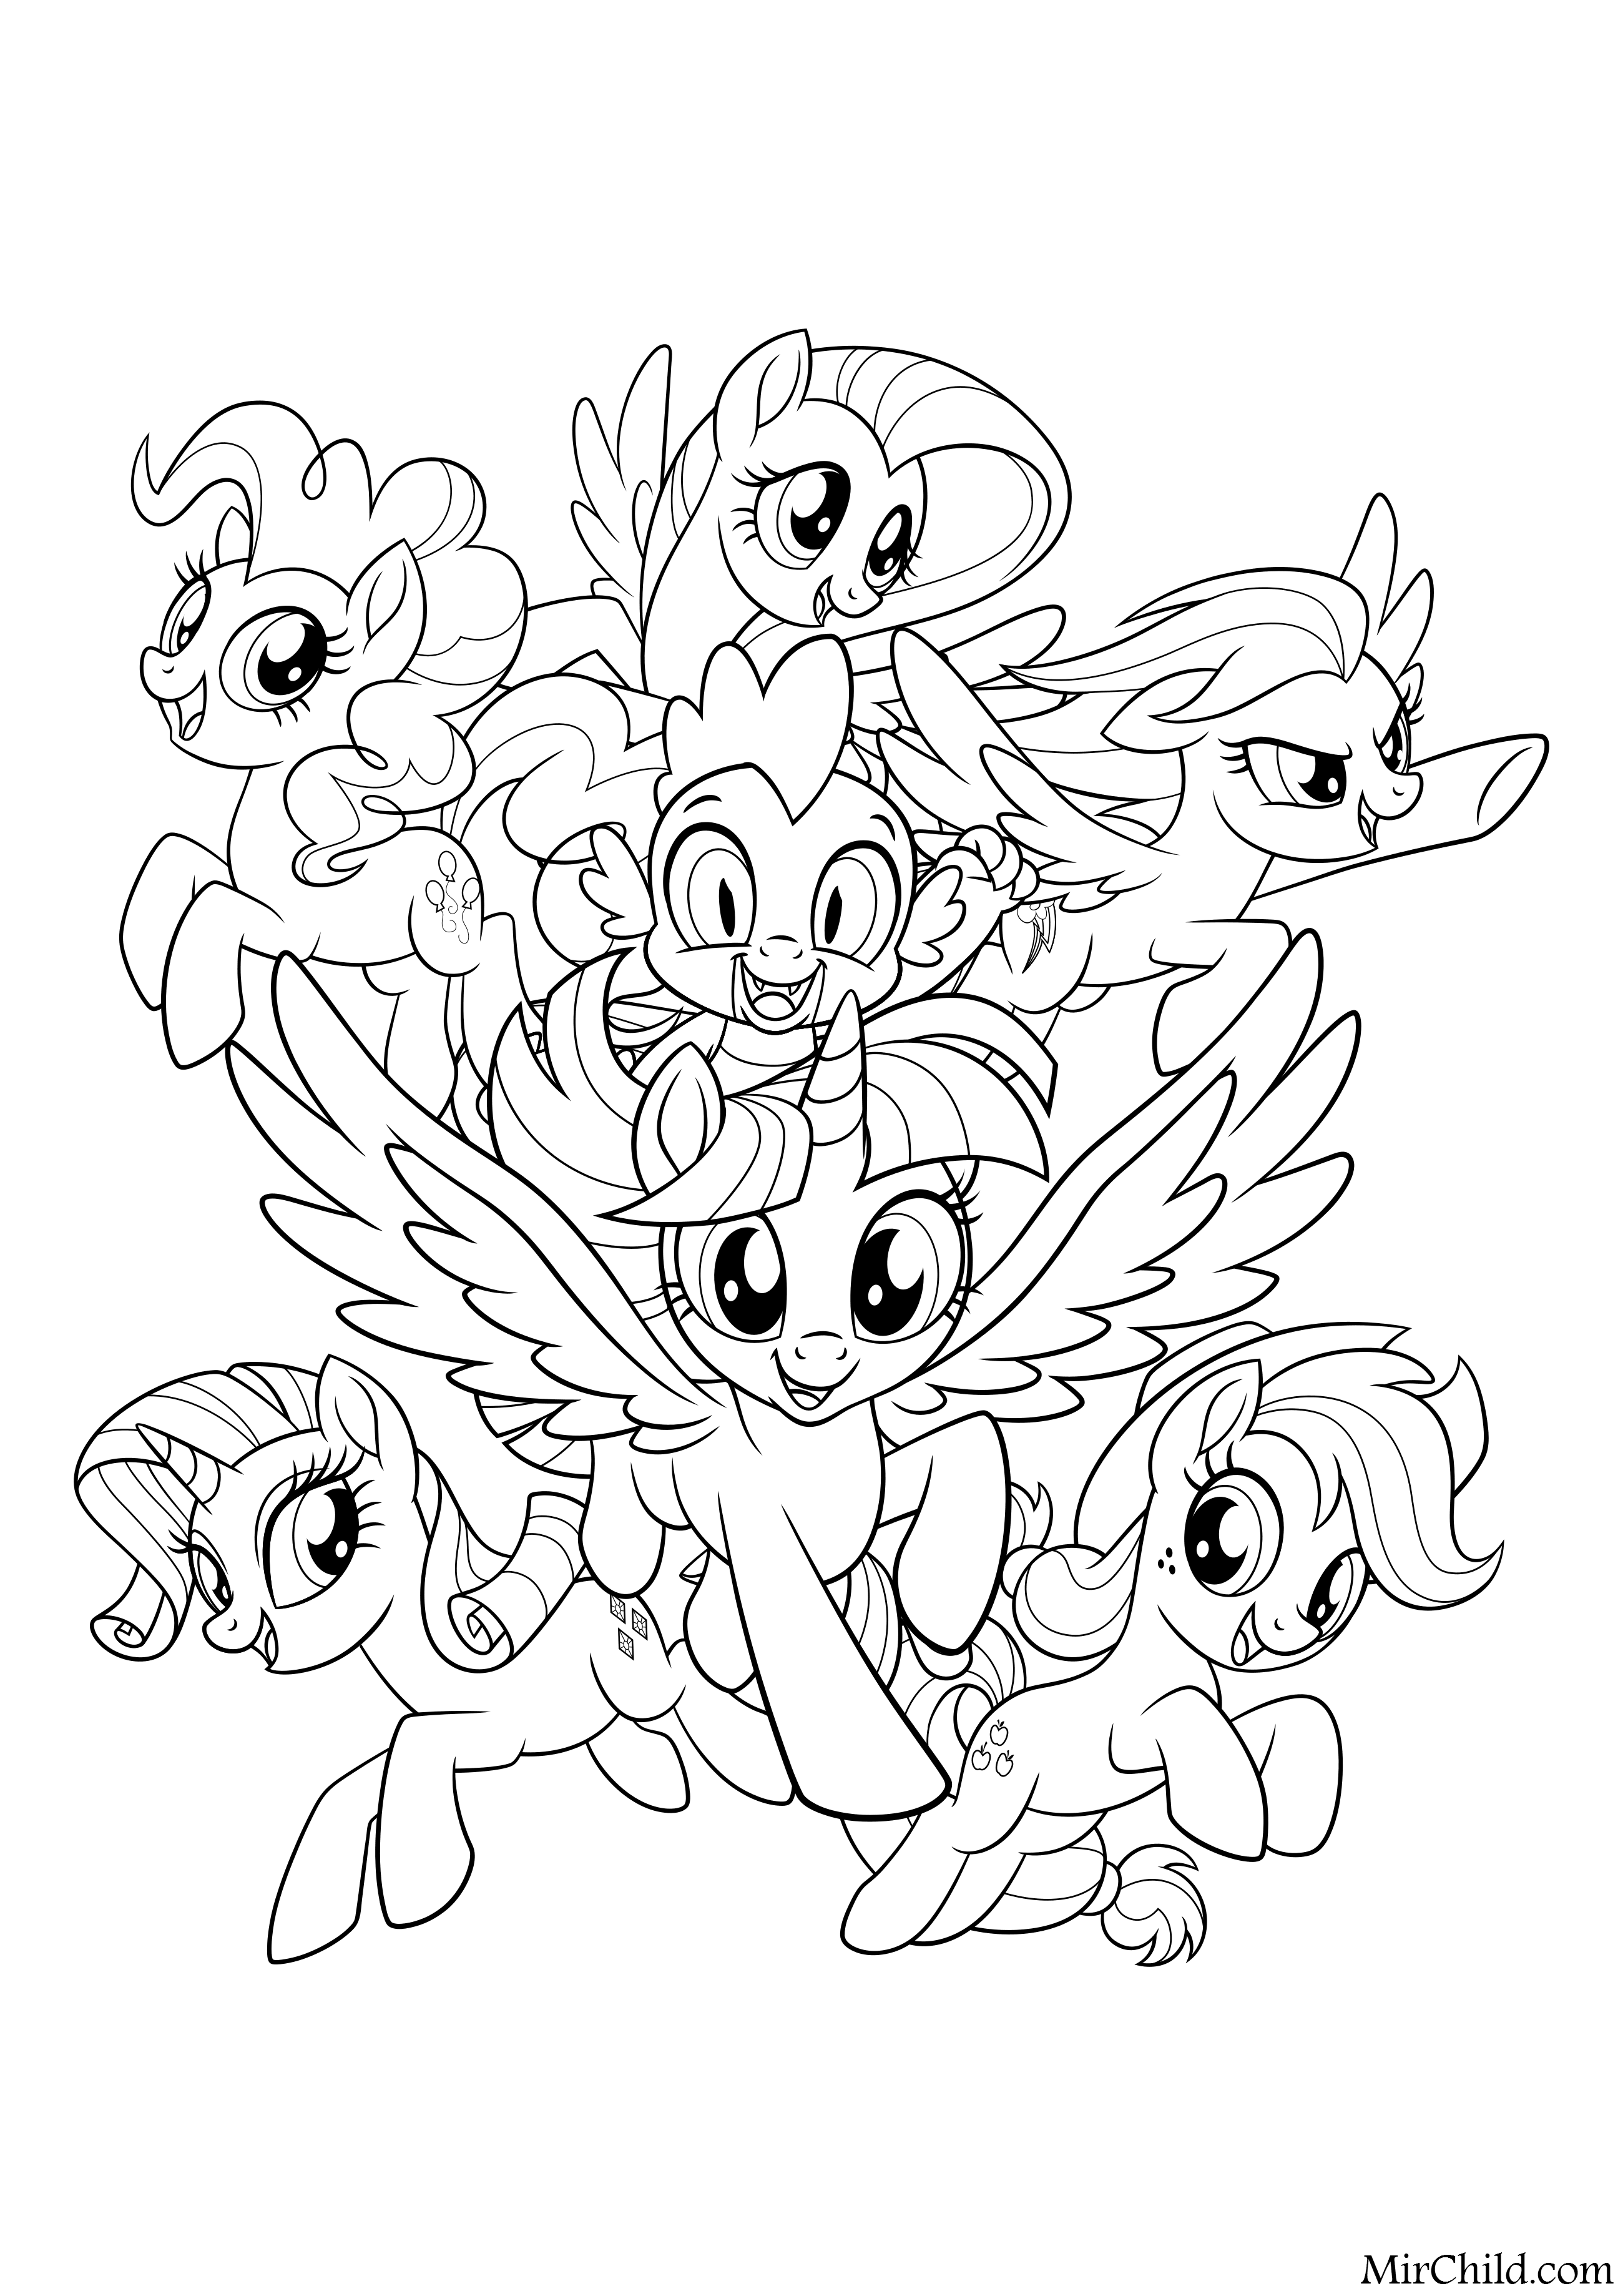 Pin By Crystal Zborek On Coloring Picture My Little Pony Coloring My Little Pony Drawing Mermaid Coloring Pages